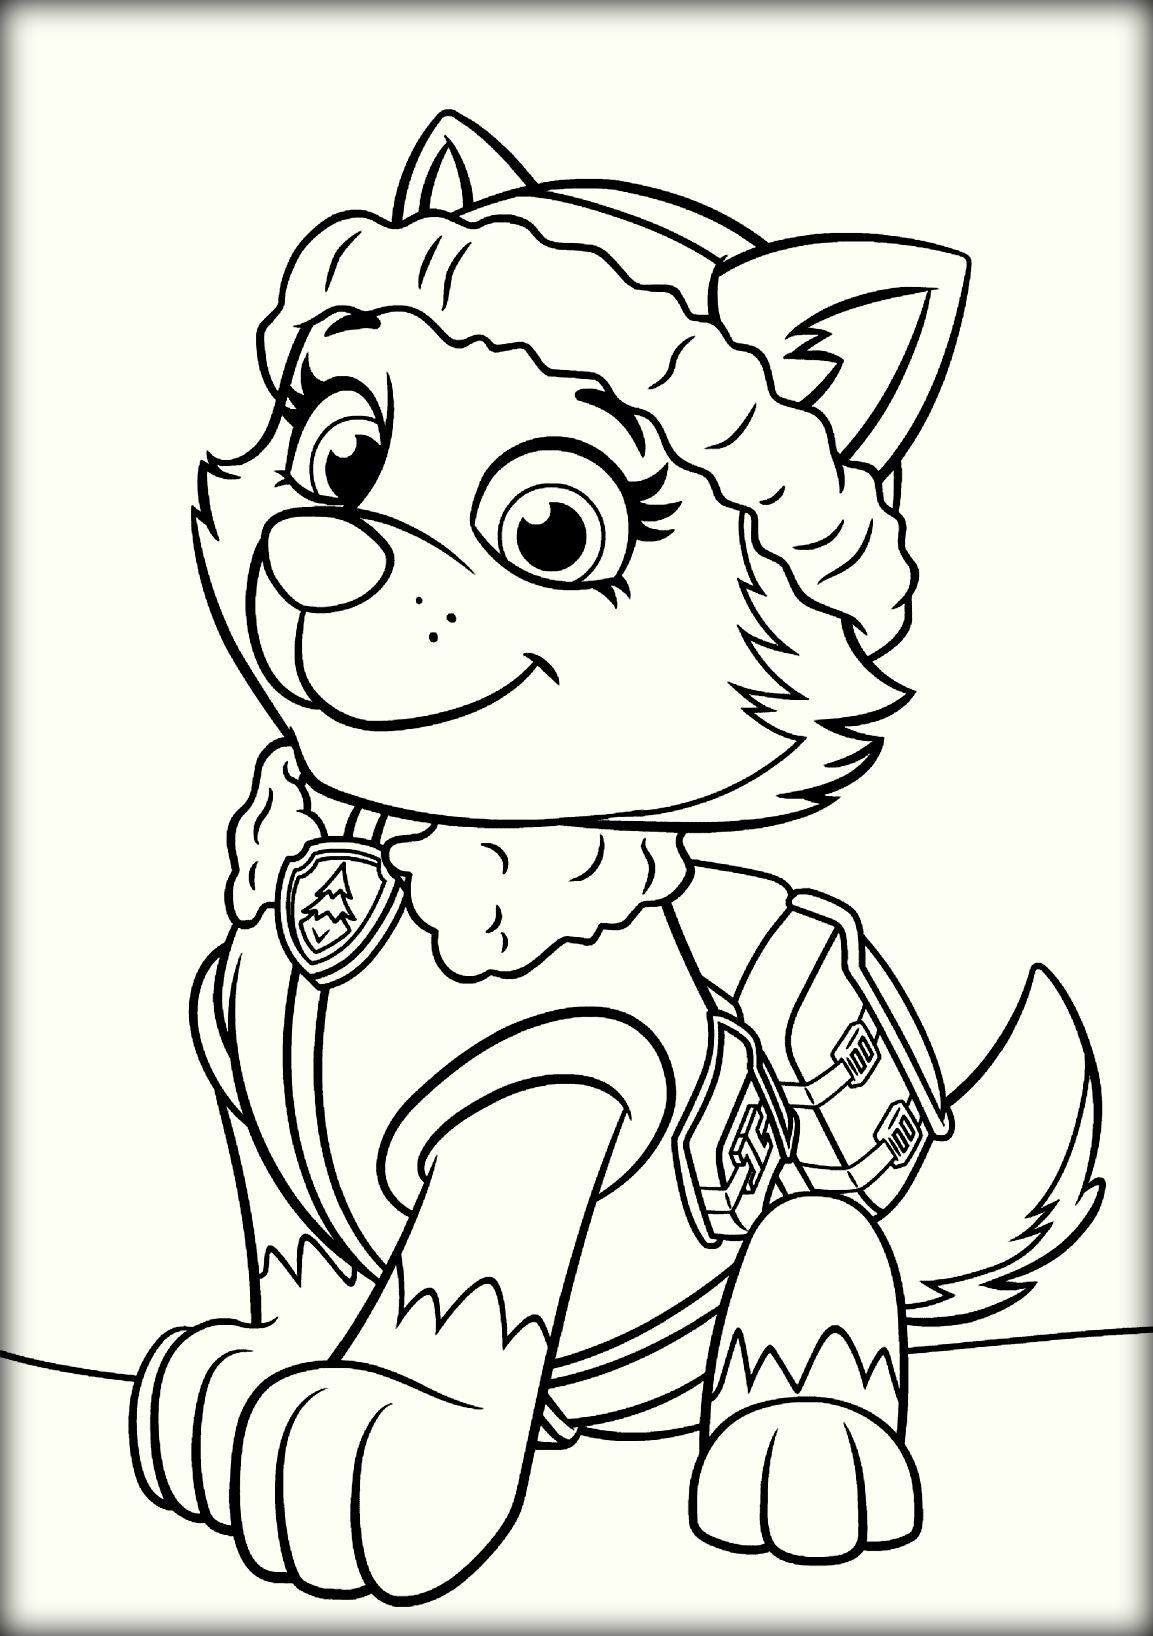 1153x1636 Grinch Stole Christmas Coloring Page New Coloring Sheets